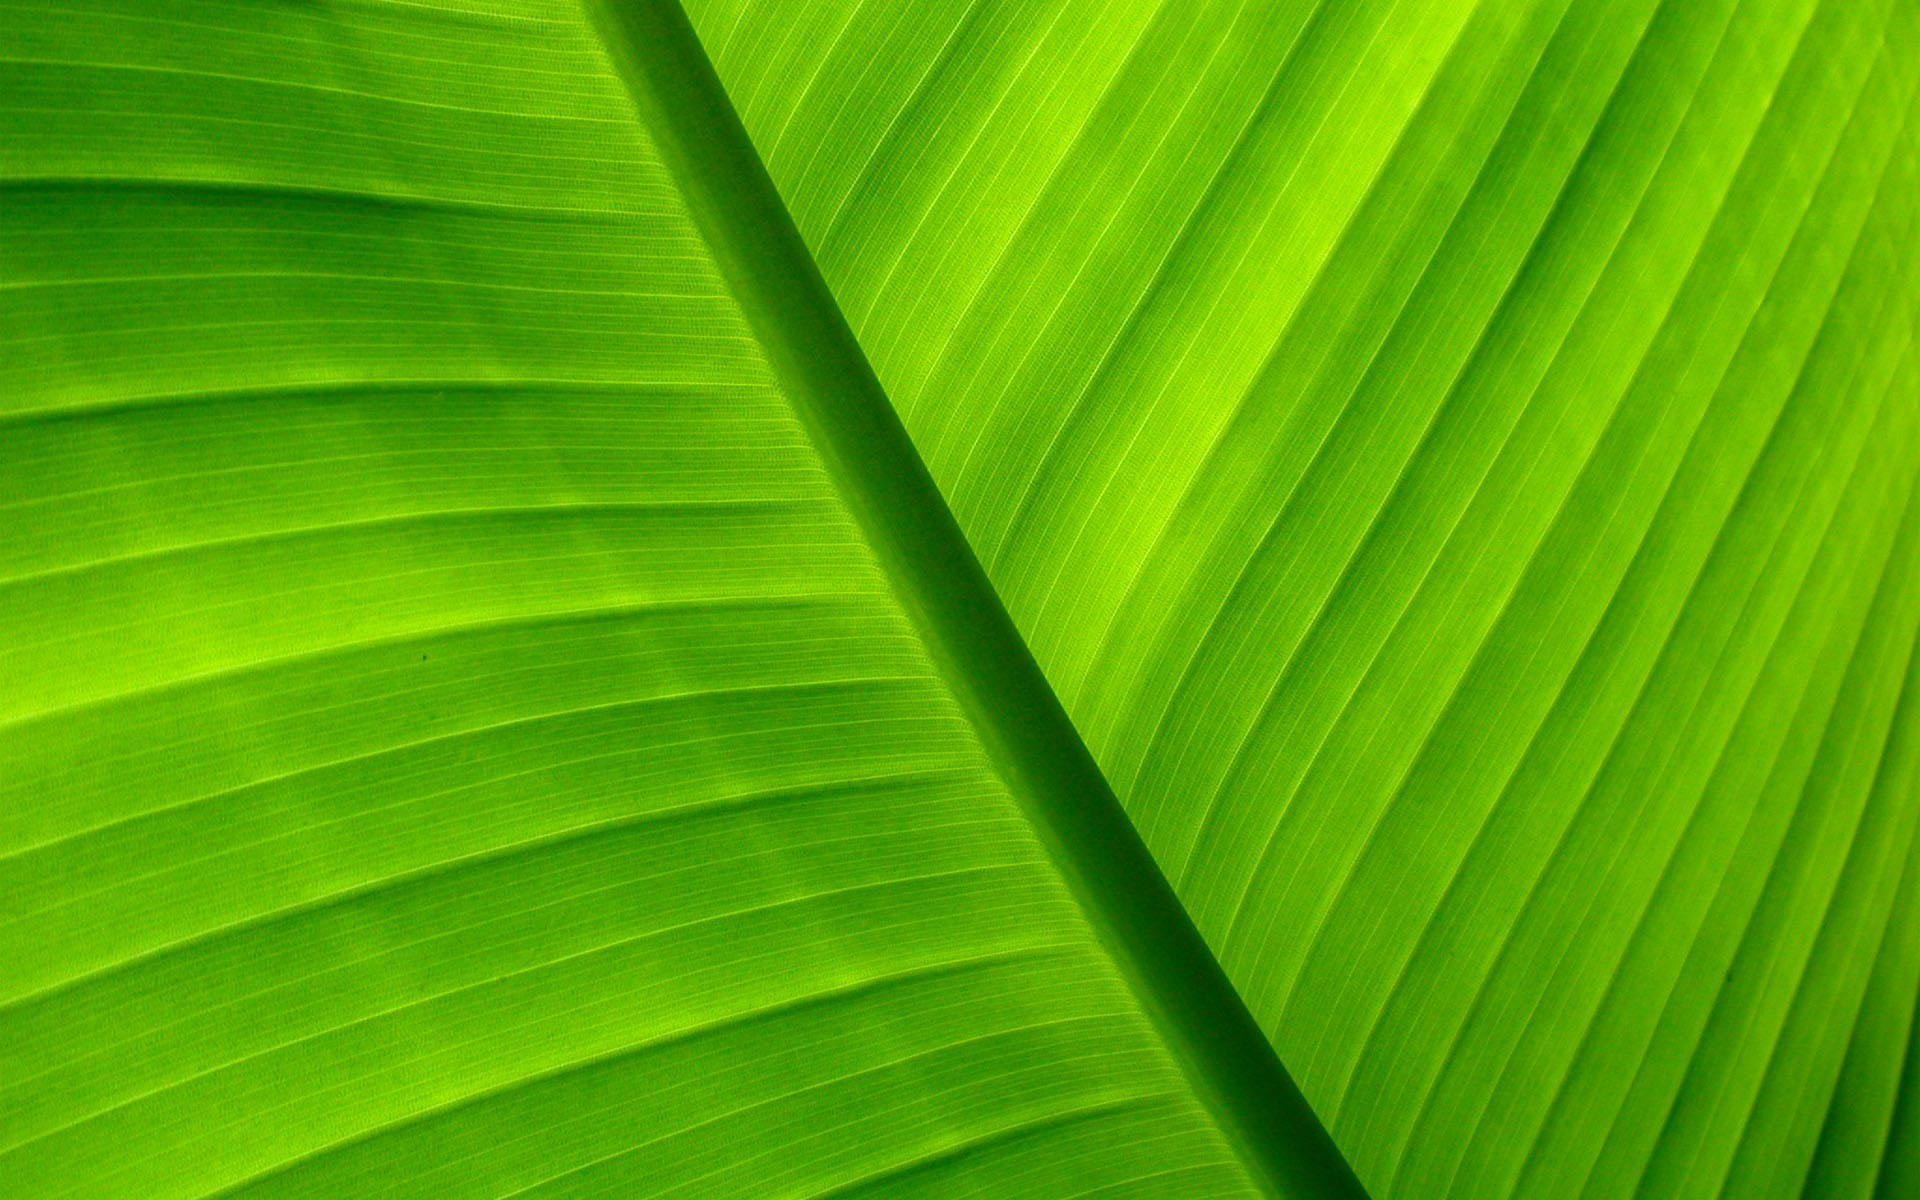 Palm leaf wallpaper 6285 1920x1200